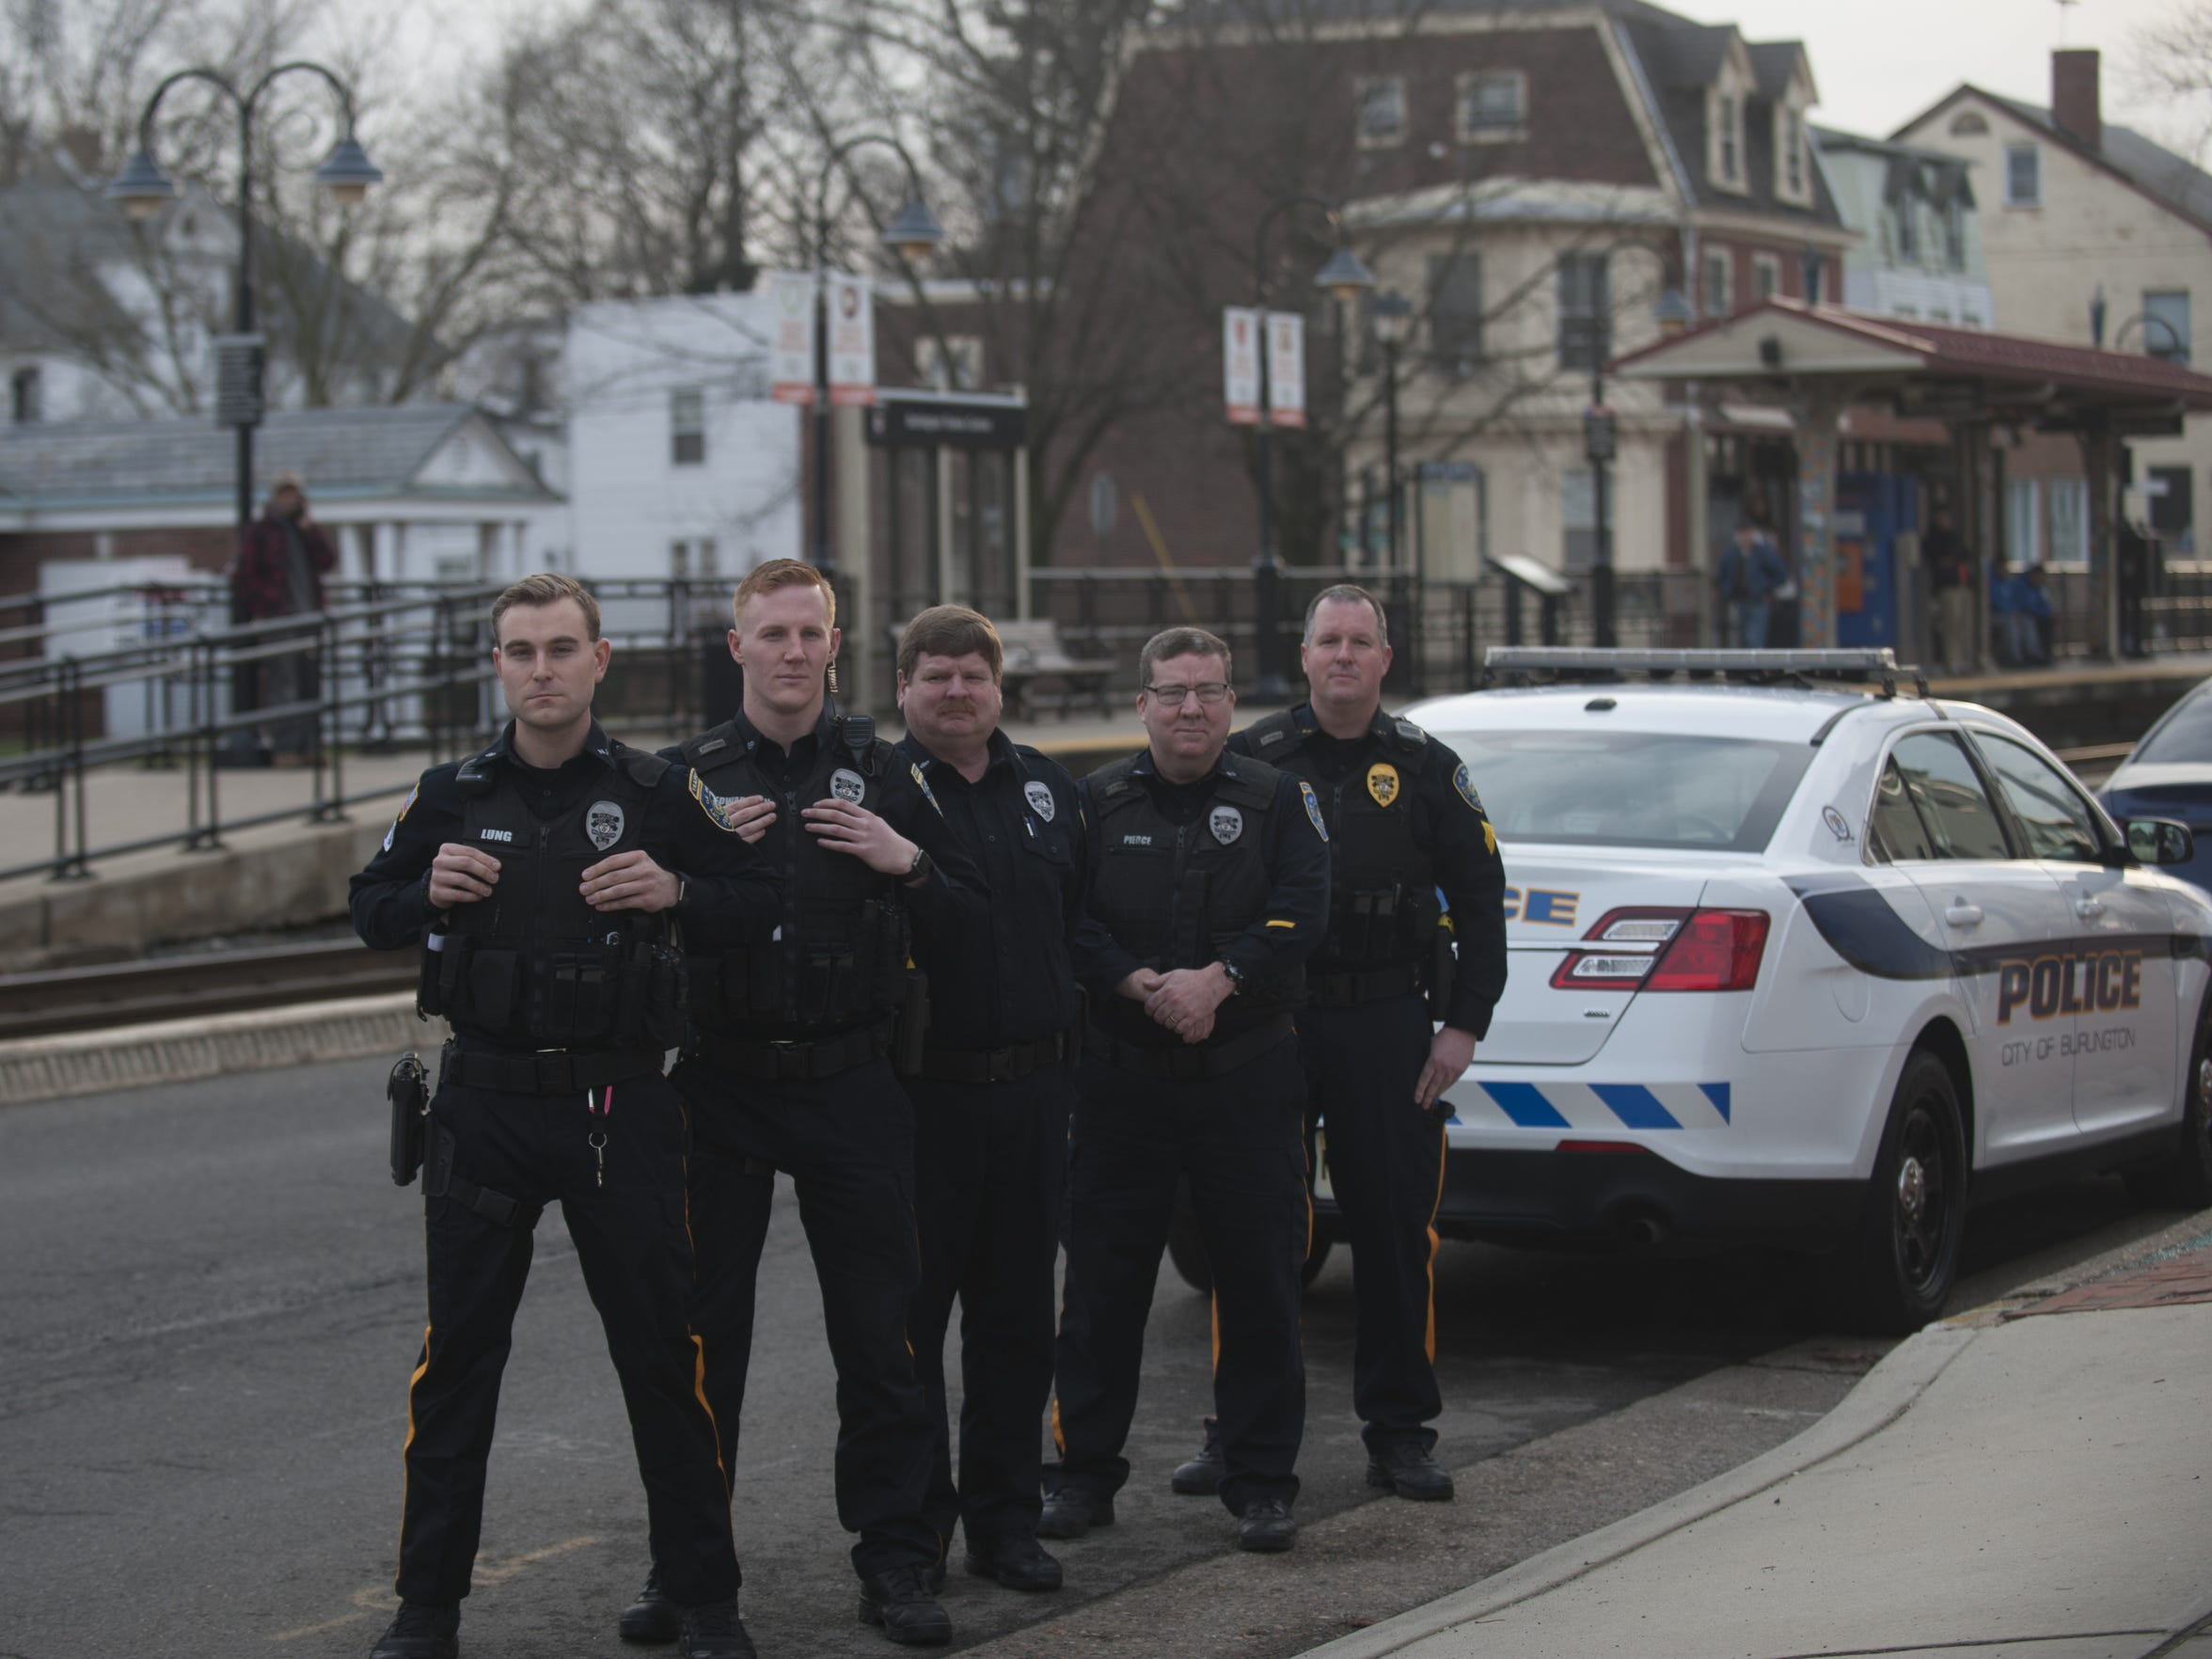 Burlington City police officers (from left) Cameron Lung, David Edwardson, Keith Spencer, Gregory Pierce and Sgt. Ron Fuss stand near the station where they rescued a little girl thrown onto the tracks.